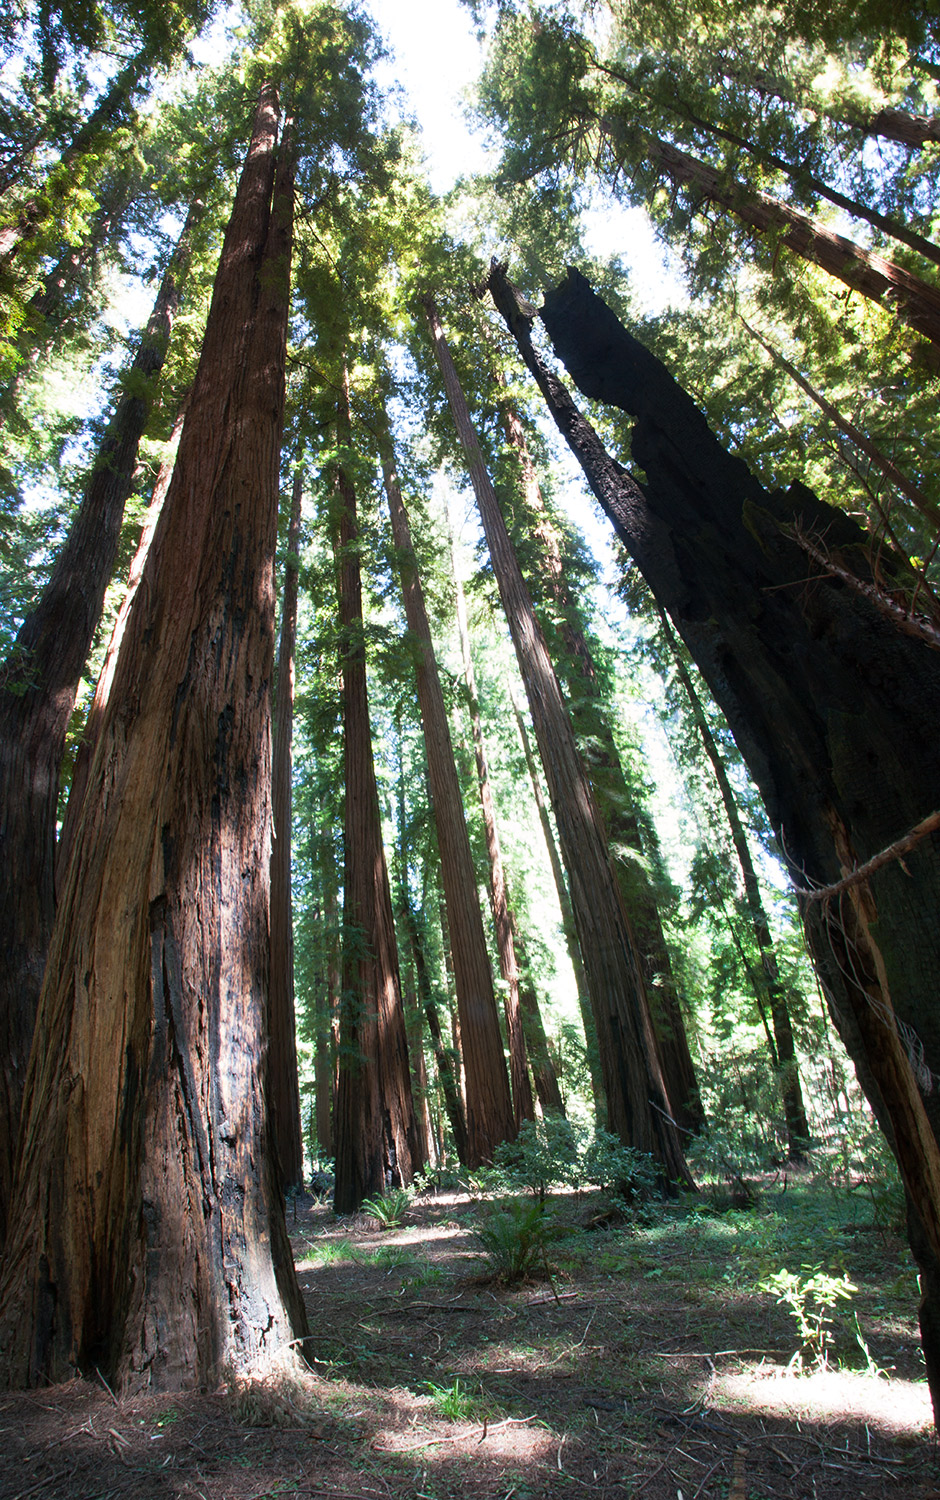 A80_Pacific_Coast_2006-Redwoods_Panorama_C20_3413-180.jpg